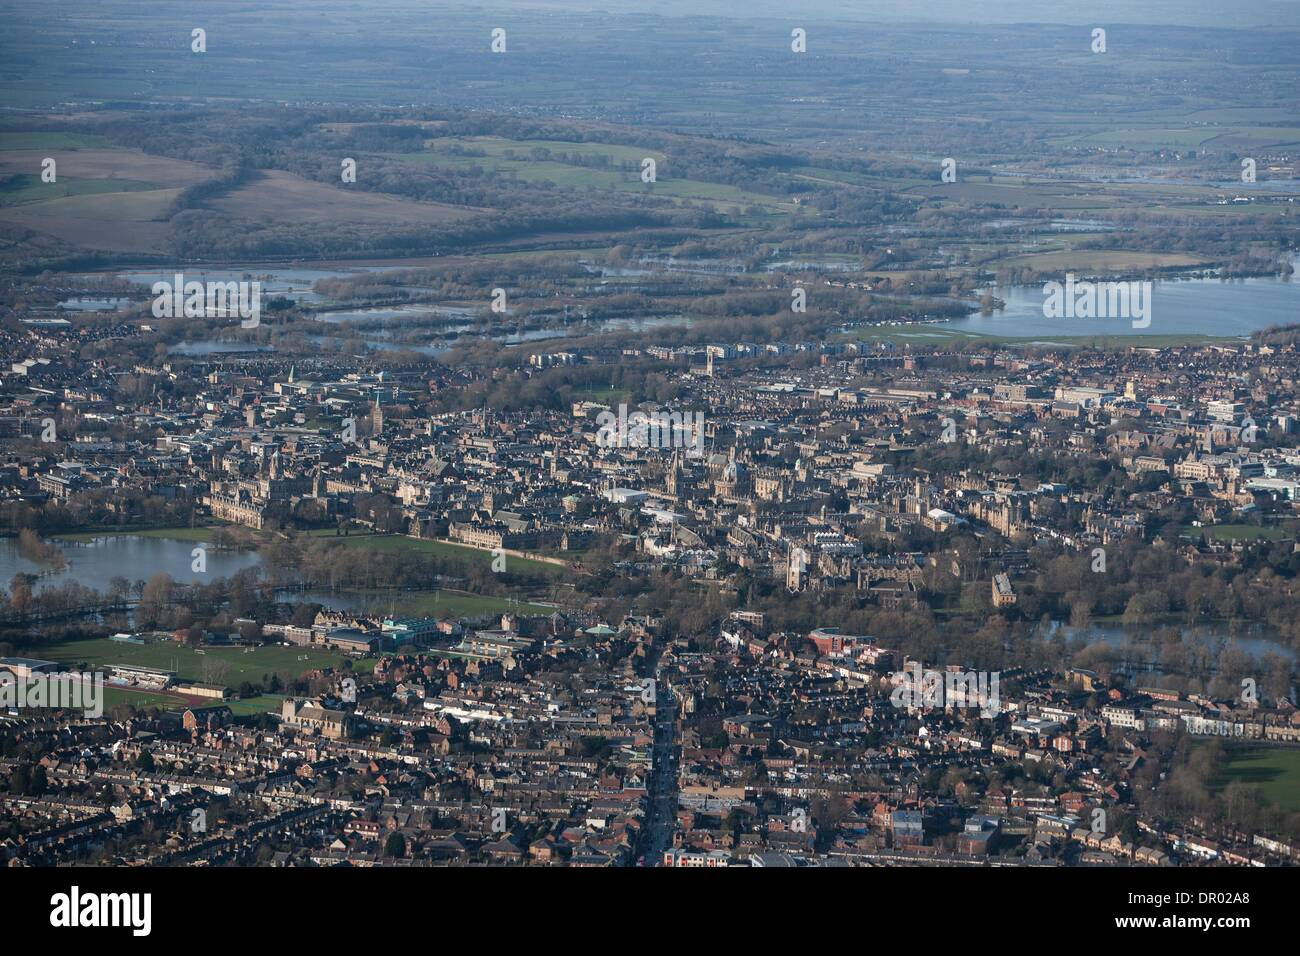 Oxford, UK. 14th January 2014. The  Thames, Oxford in  flood .  View of Oxford, West  with  Portmeadow (rhs) , a natural flood plain.  The controversial University buildings  of Roger Dudman Way  can  be seen ( centre  )  along railway lines on the southern edge of Portmeadow Credit:  adrian arbib/Alamy Live News - Stock Image